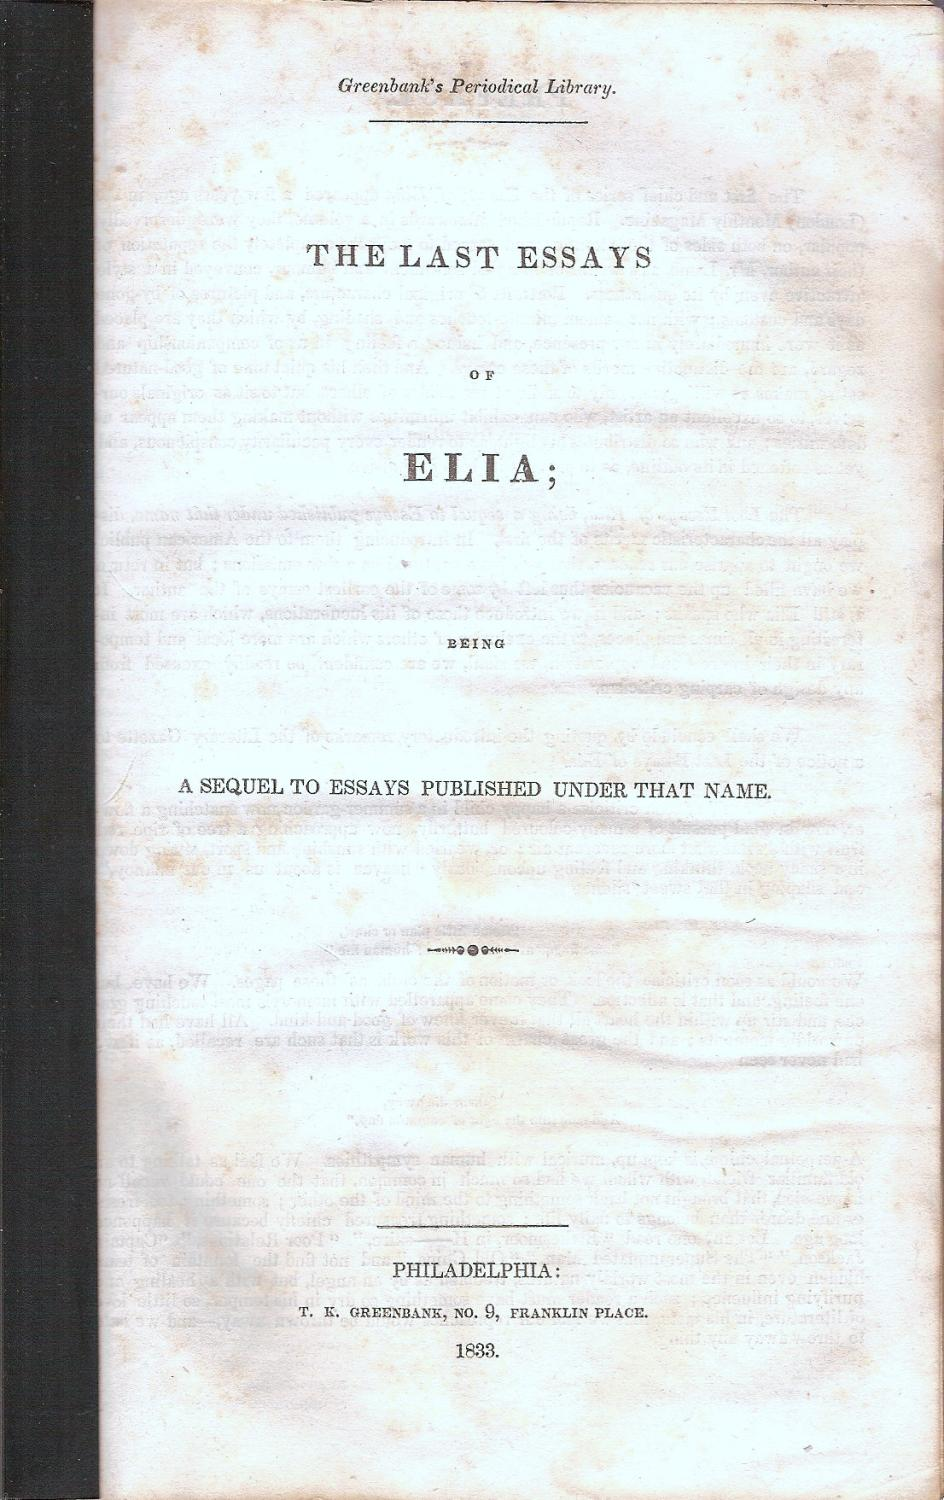 essay of elia In the essay new year's eve, which first appeared in the january 1821 issue of the london magazine was first published in the january 1821 issue of the london magazine and was included in essays of elia, 1823 (reprinted by pomona press in 2006) cite cite this article format mla apa.